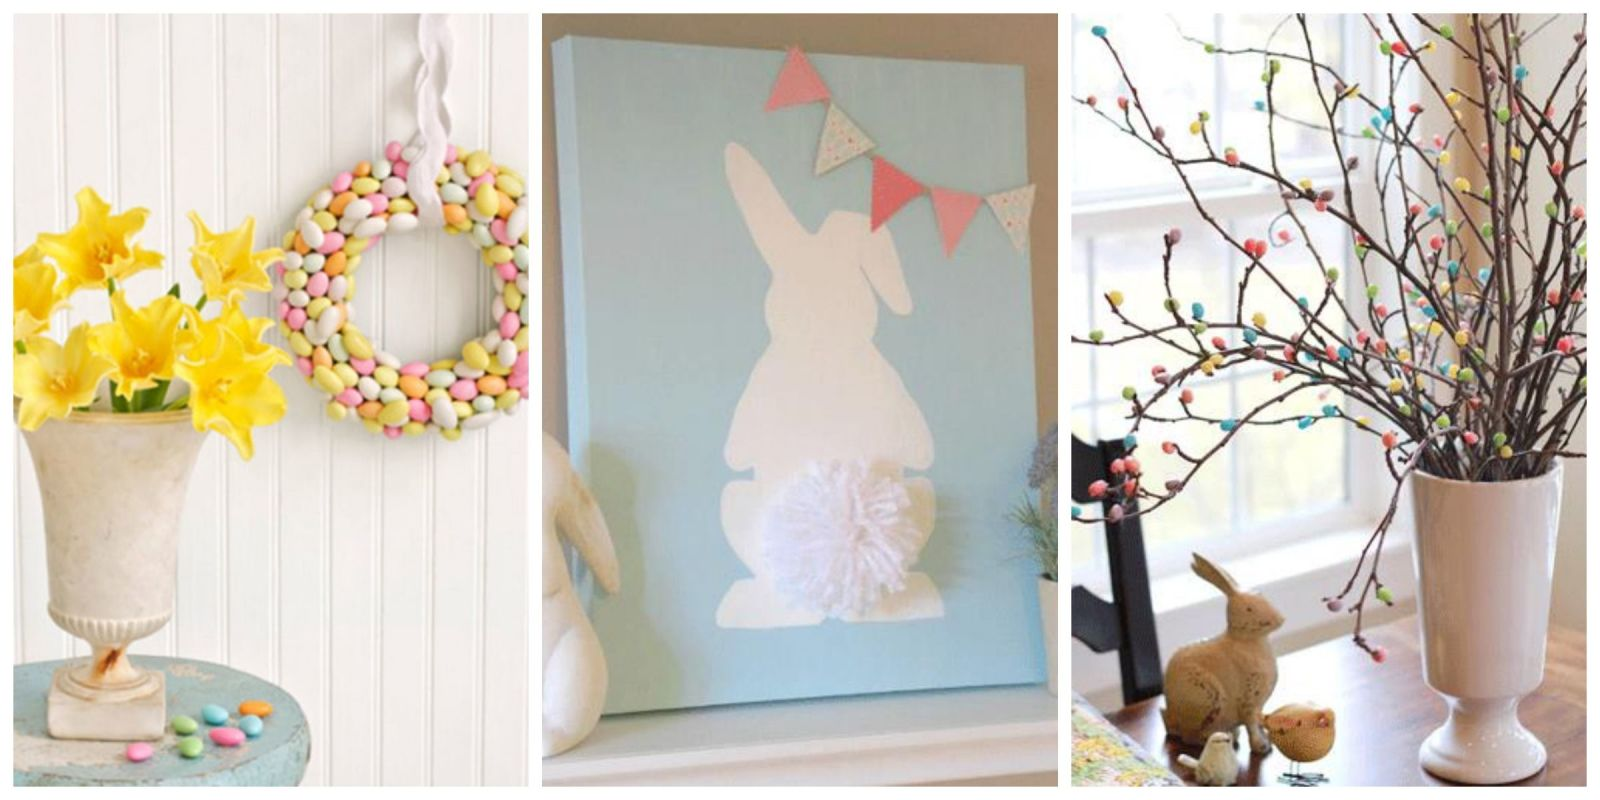 35 easy easter crafts ideas for easter diy projects